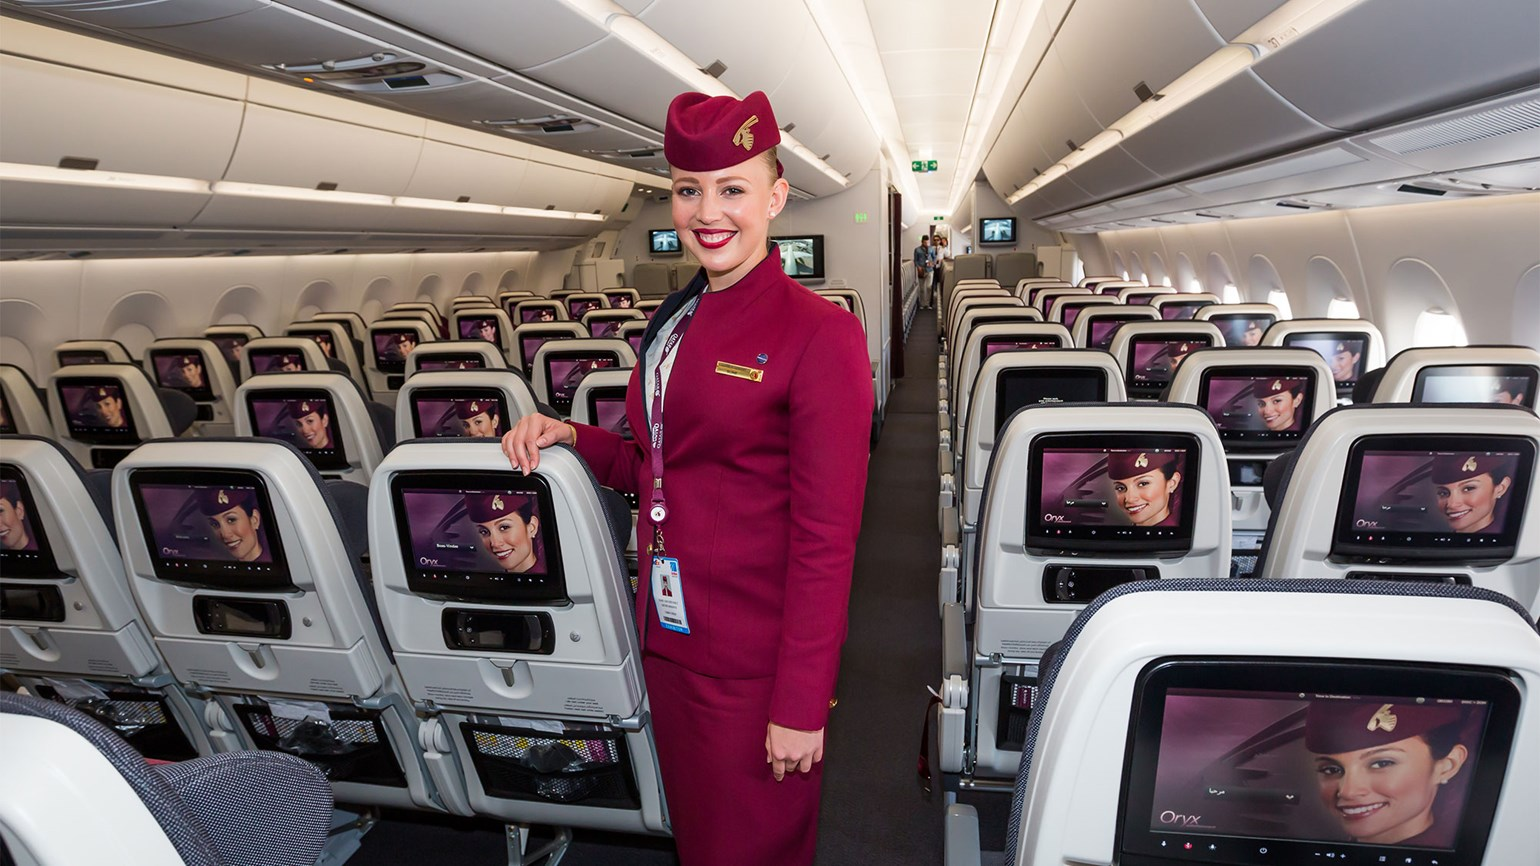 Qatar Airways CEO calls U.S. flight attendants 'grandmothers'